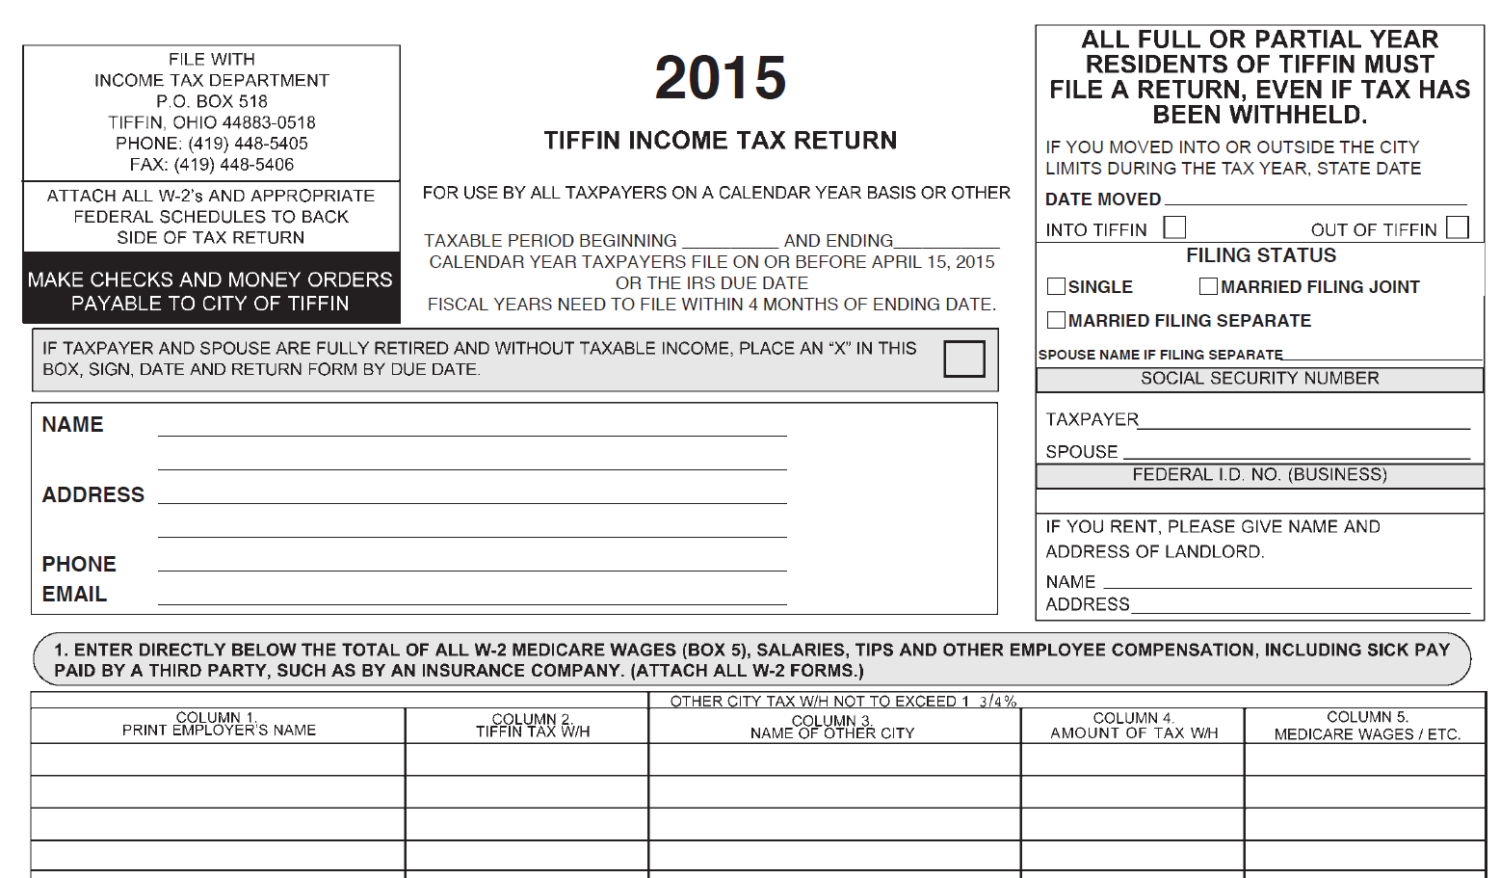 2015 City Income Tax Form   City of Tiffin